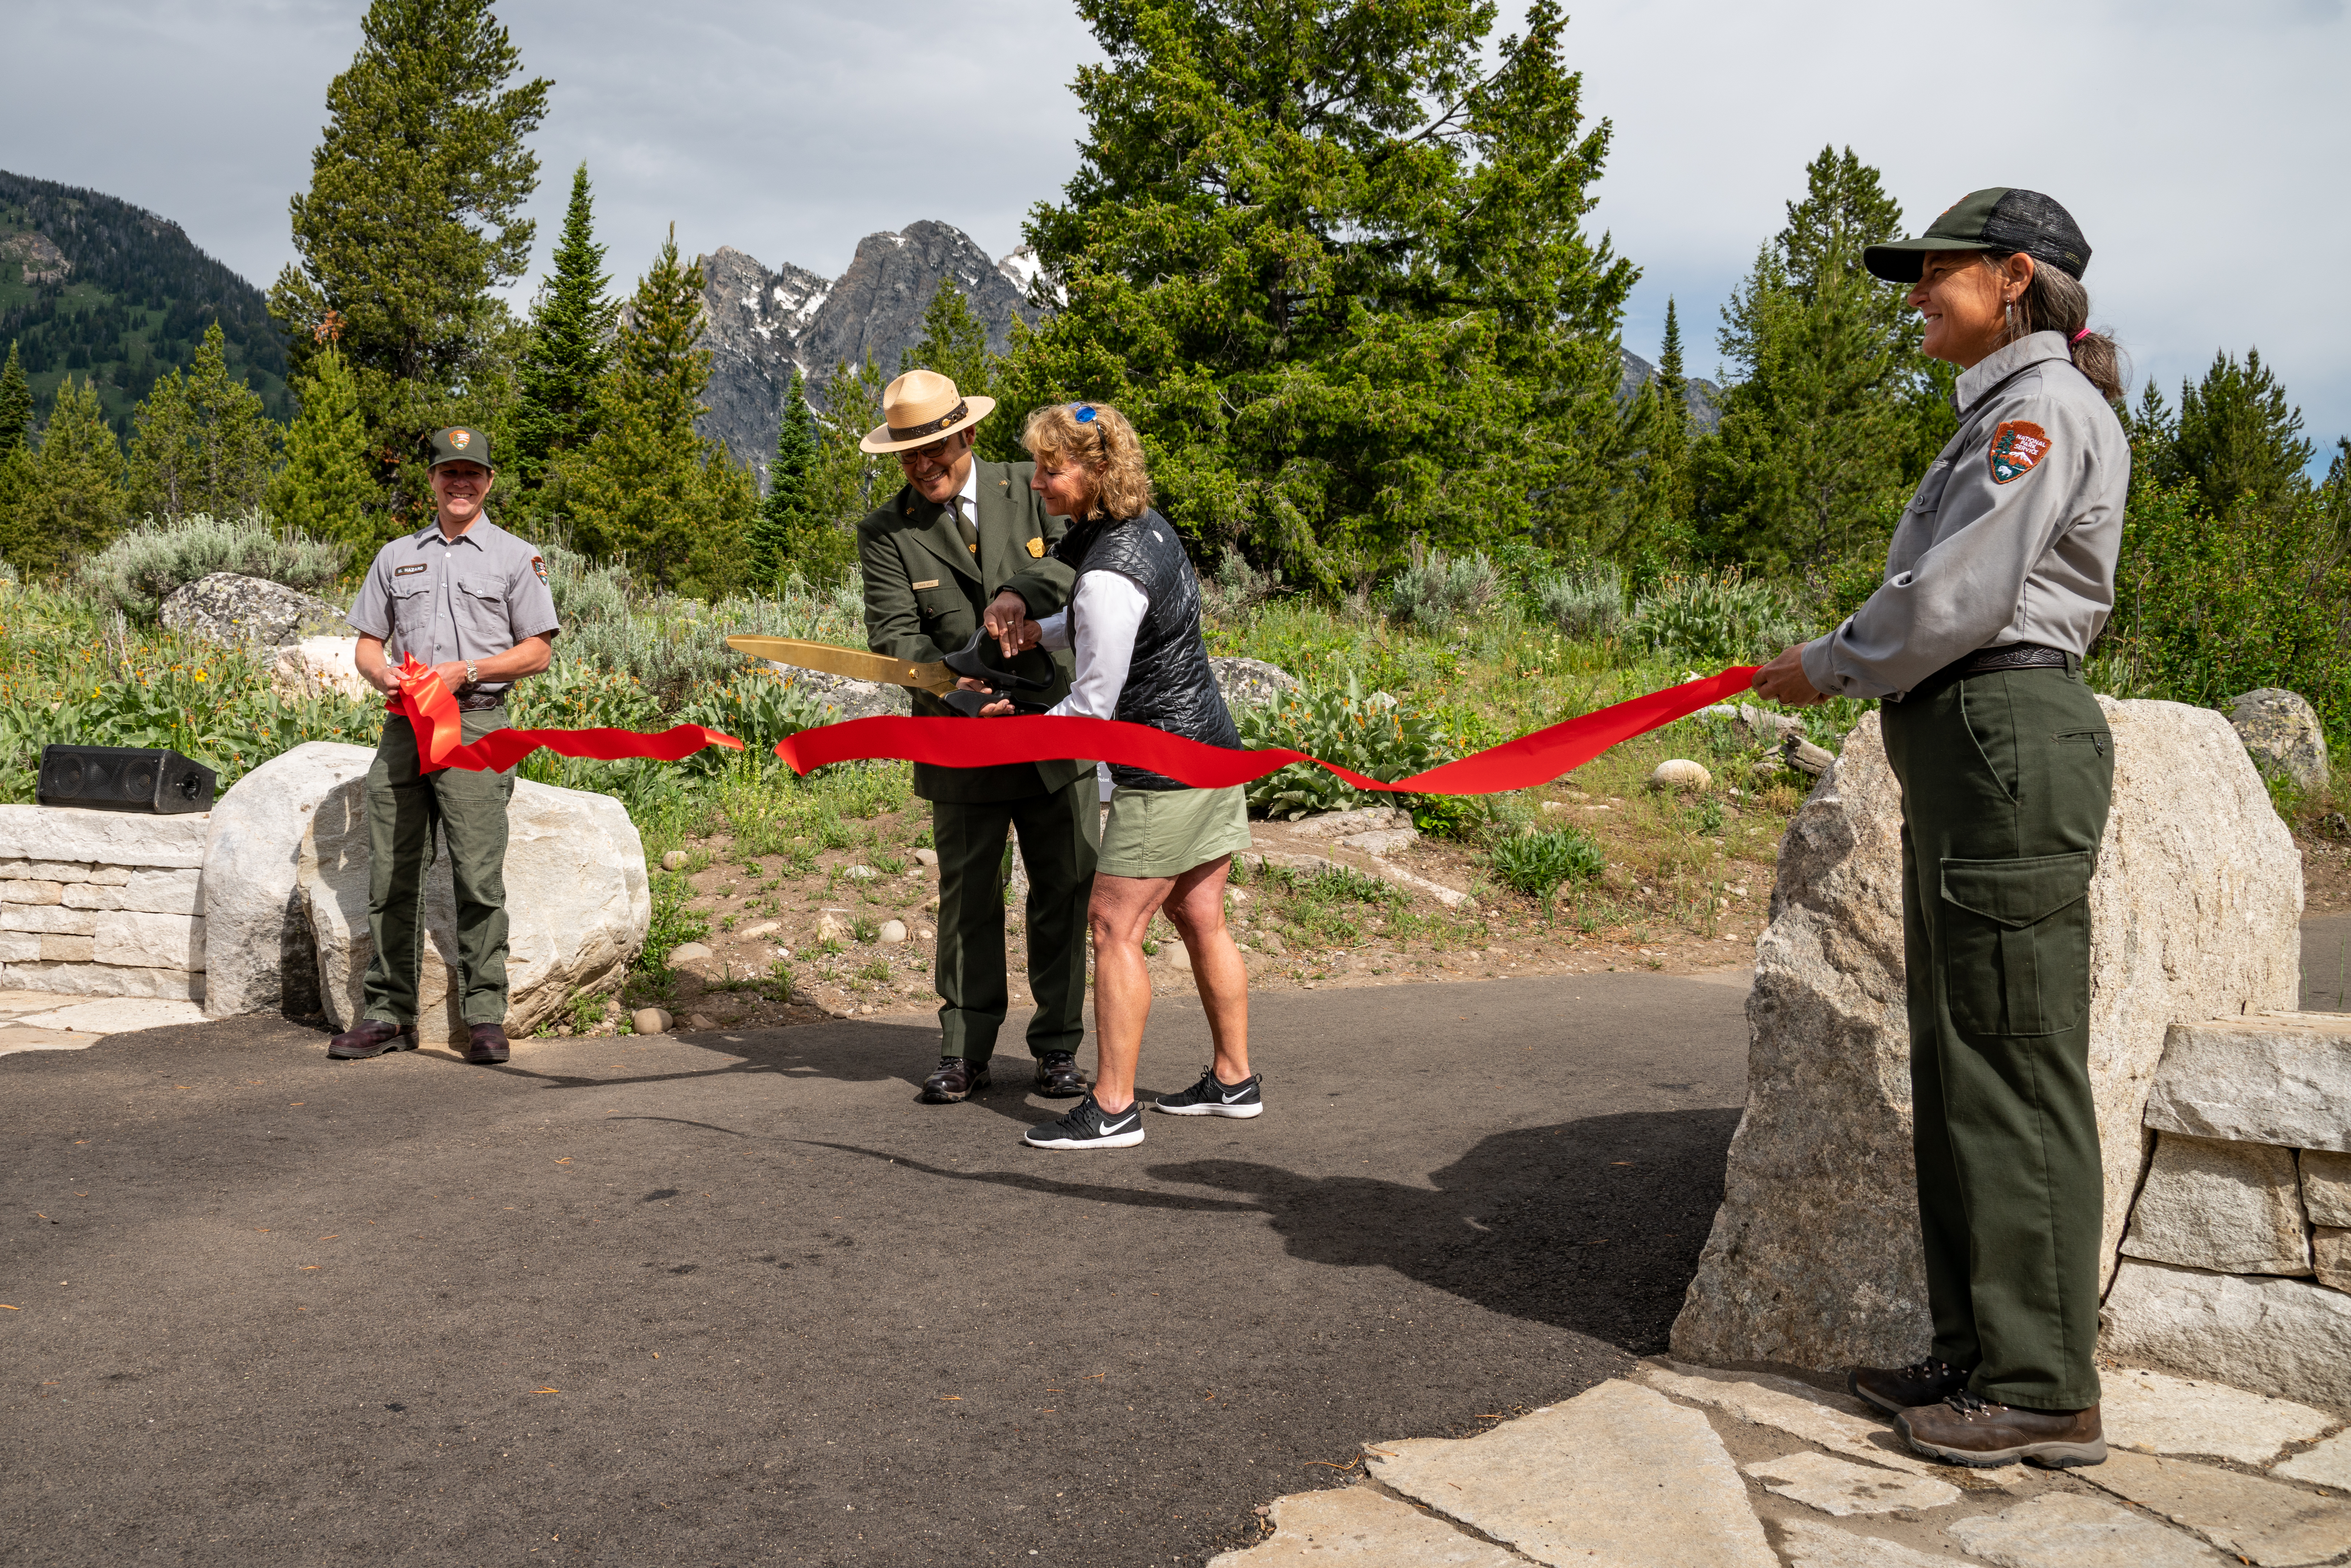 Acting Deputy Director of Operations for the National Park Service David Vela and Grand Teton National Park Foundation President Leslie Mattson cut the ribbon at the Jenny Lake Renewal Project